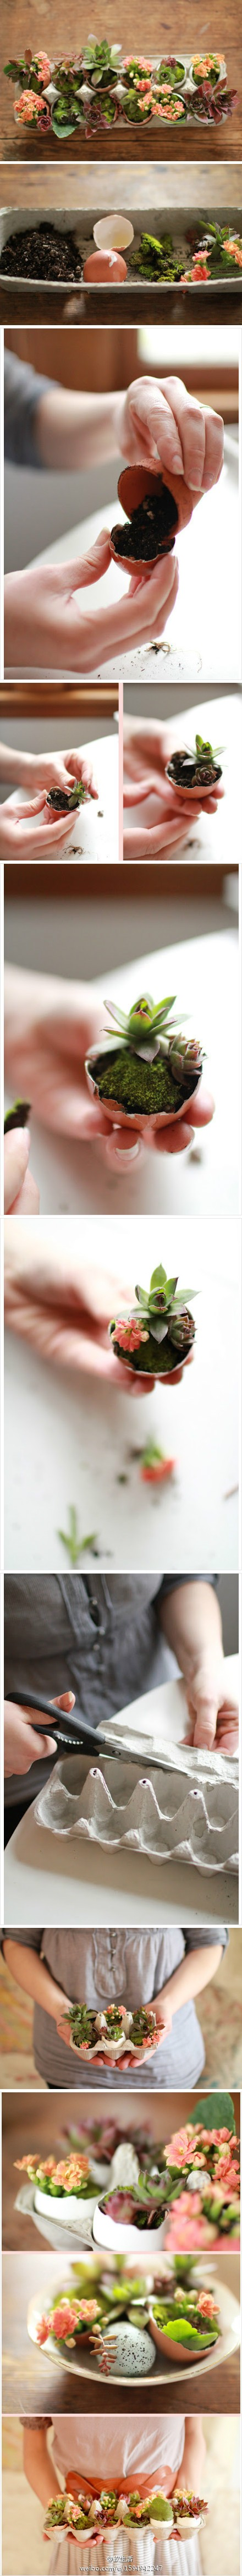 How to make cute DIY eggshell planters step by step tutorial instructions